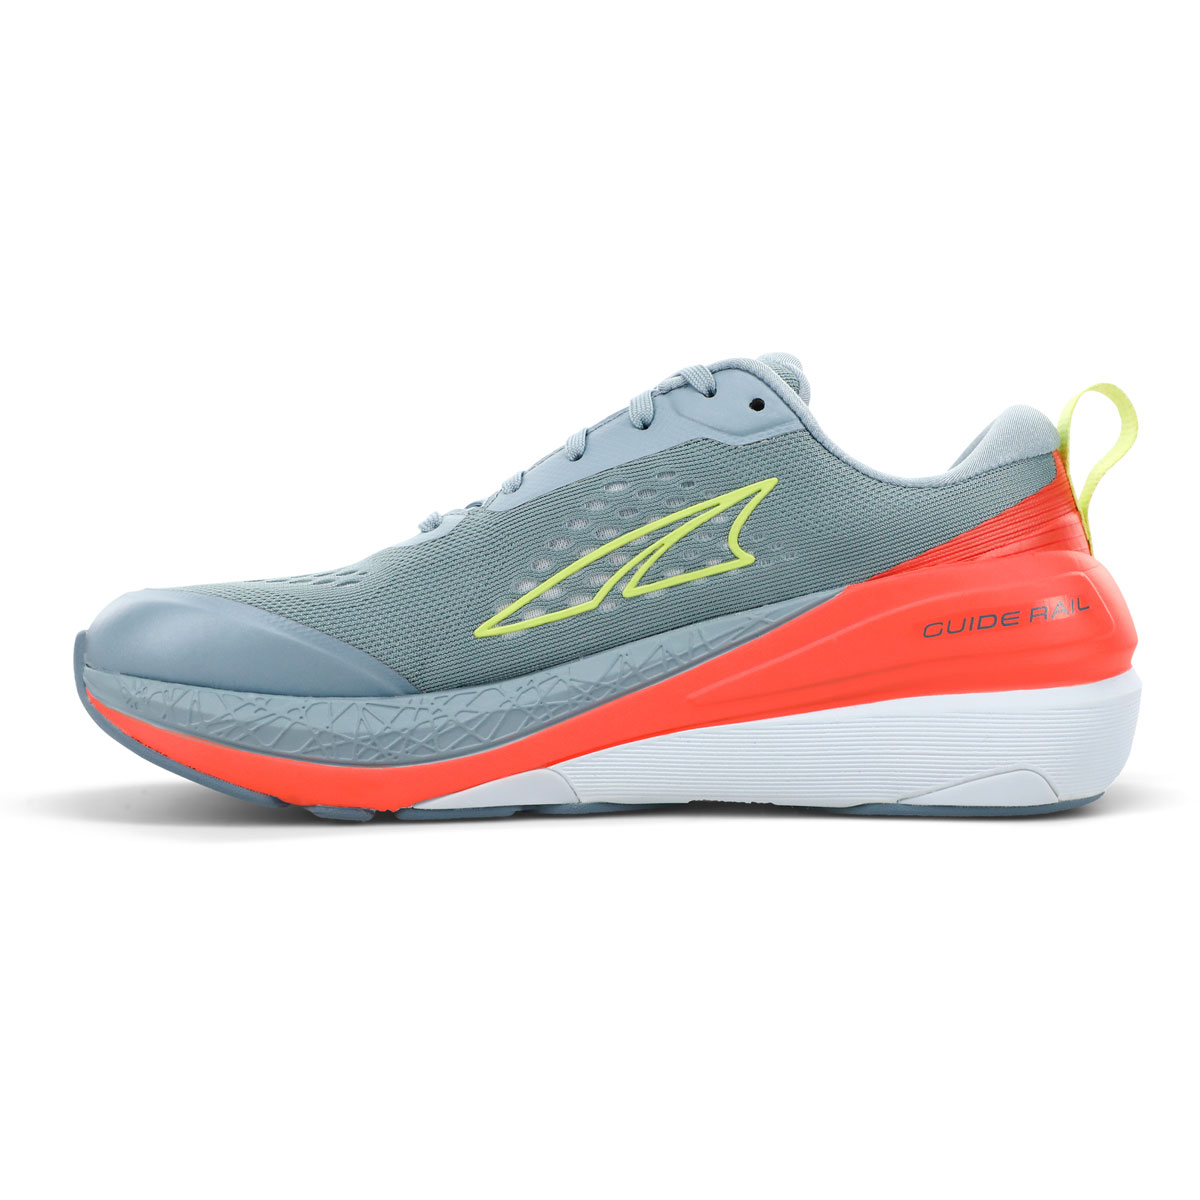 Women's Altra Paradigm 5 Running Shoe - Color: Gray/Coral - Size: 5.5 - Width: Regular, Gray/Coral, large, image 2